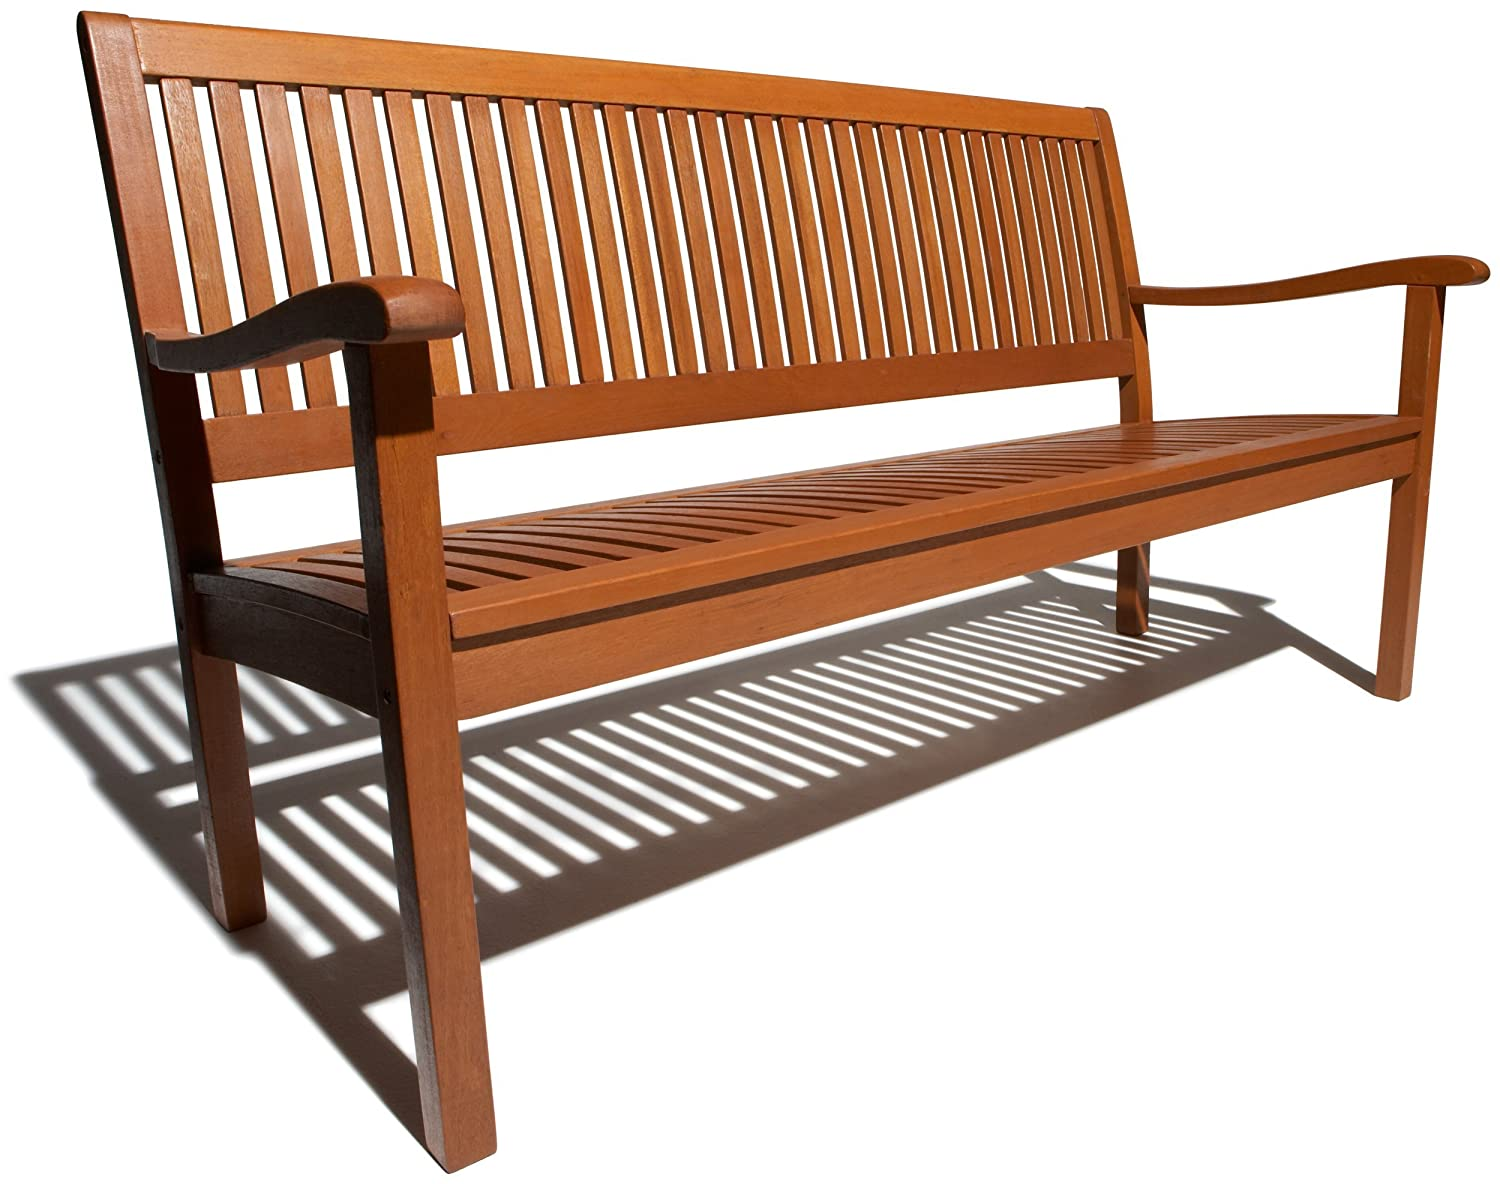 Wood patio bench home decor and furniture deals for Outdoor furniture benches